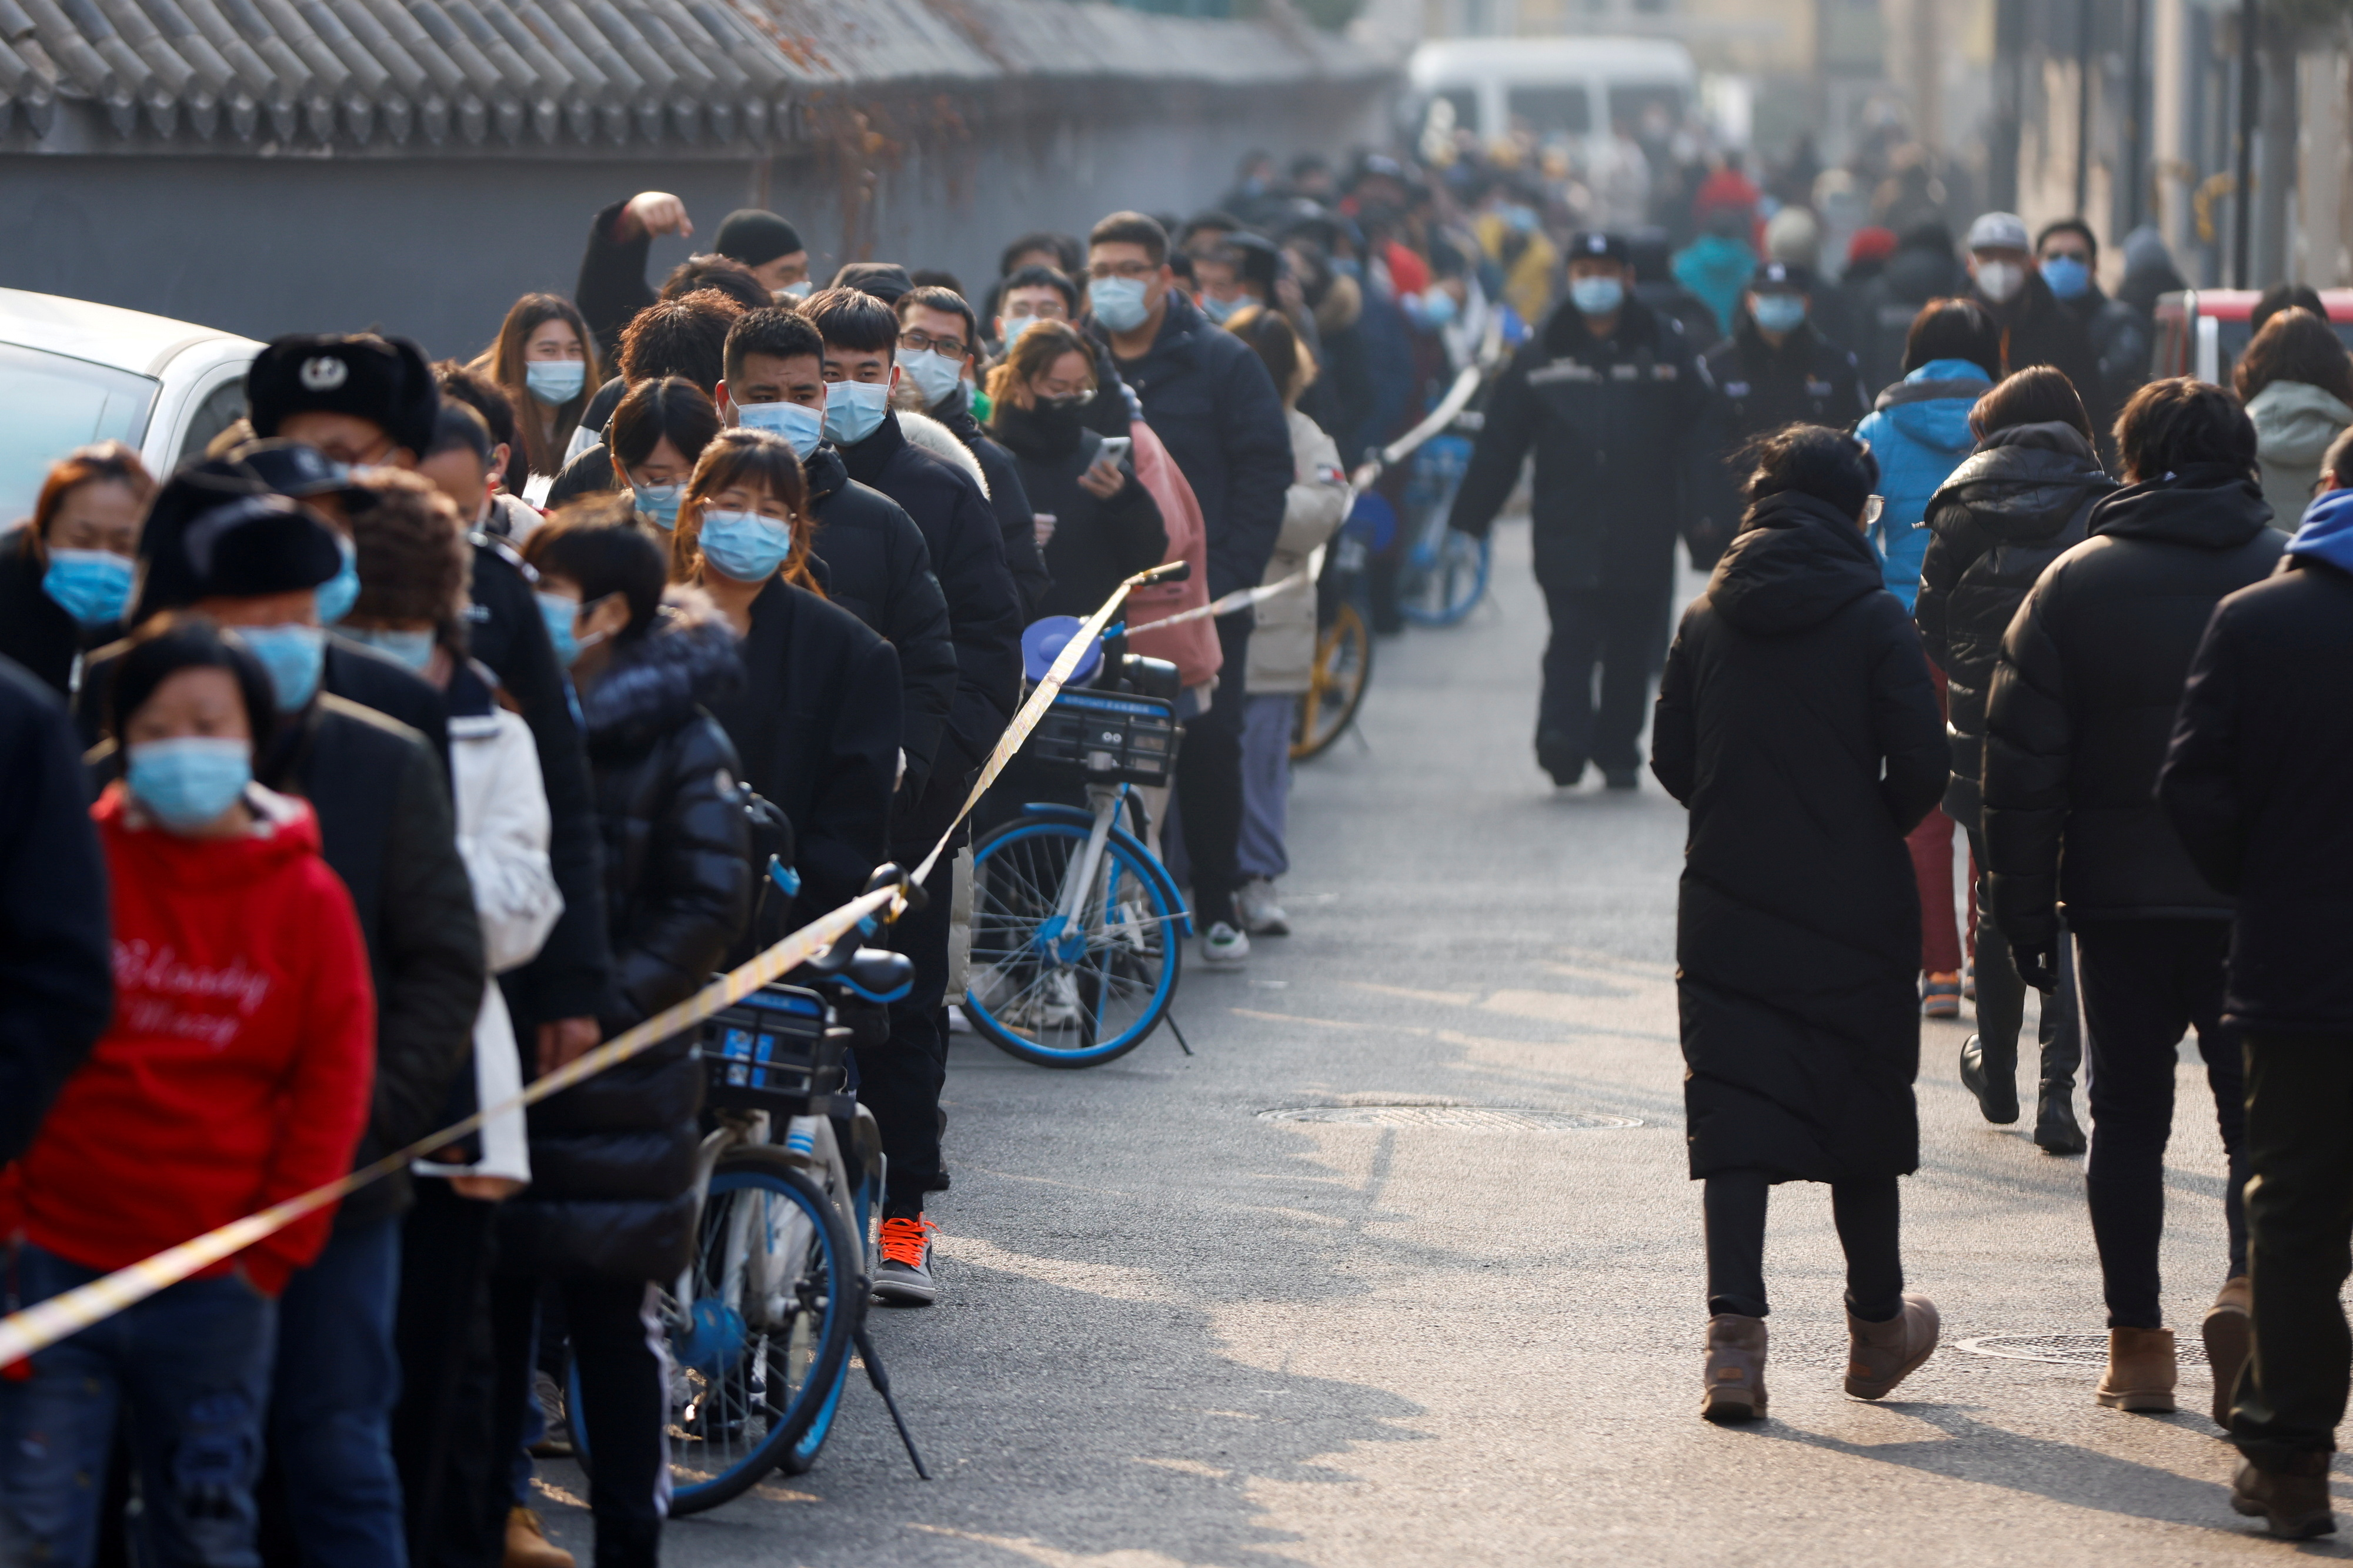 People line up to get their nucleic acid test following the outbreak of the coronavirus disease (COVID-19) in Beijing, China January 22, 2021. REUTERS/Carlos Garcia Rawlins